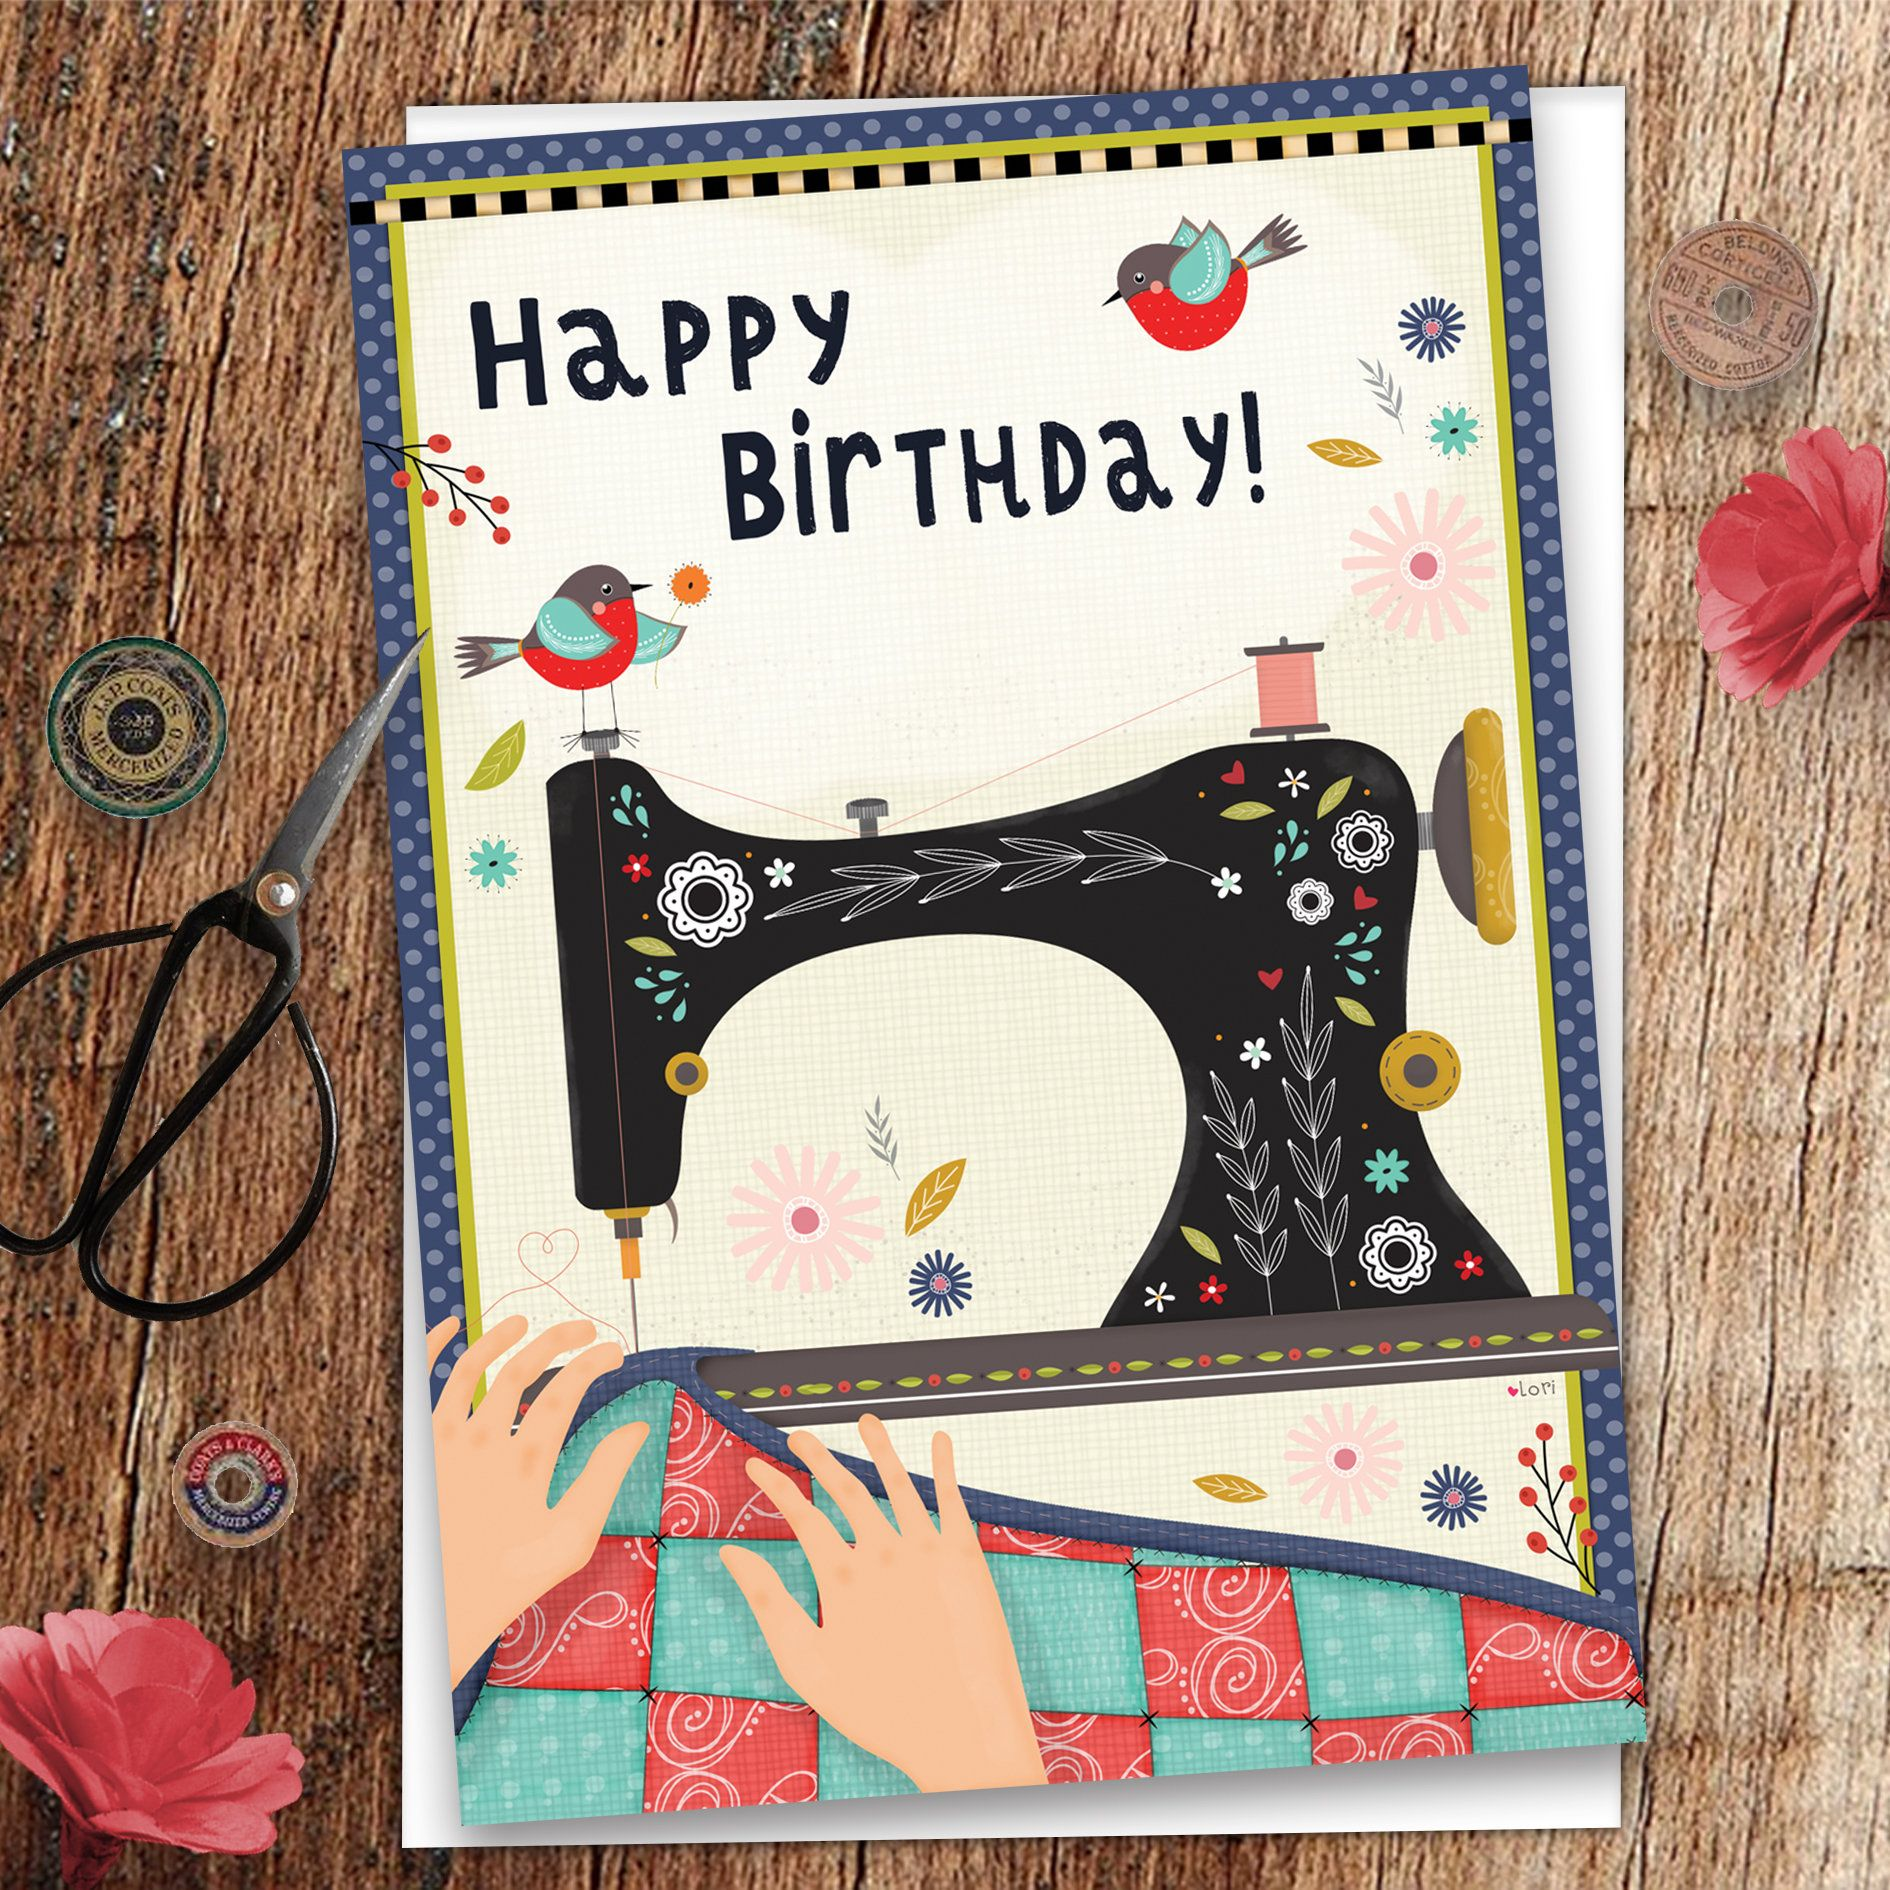 Quilt Birthday Card Quilt Greeting Card Sewing Birthday  Etsy in